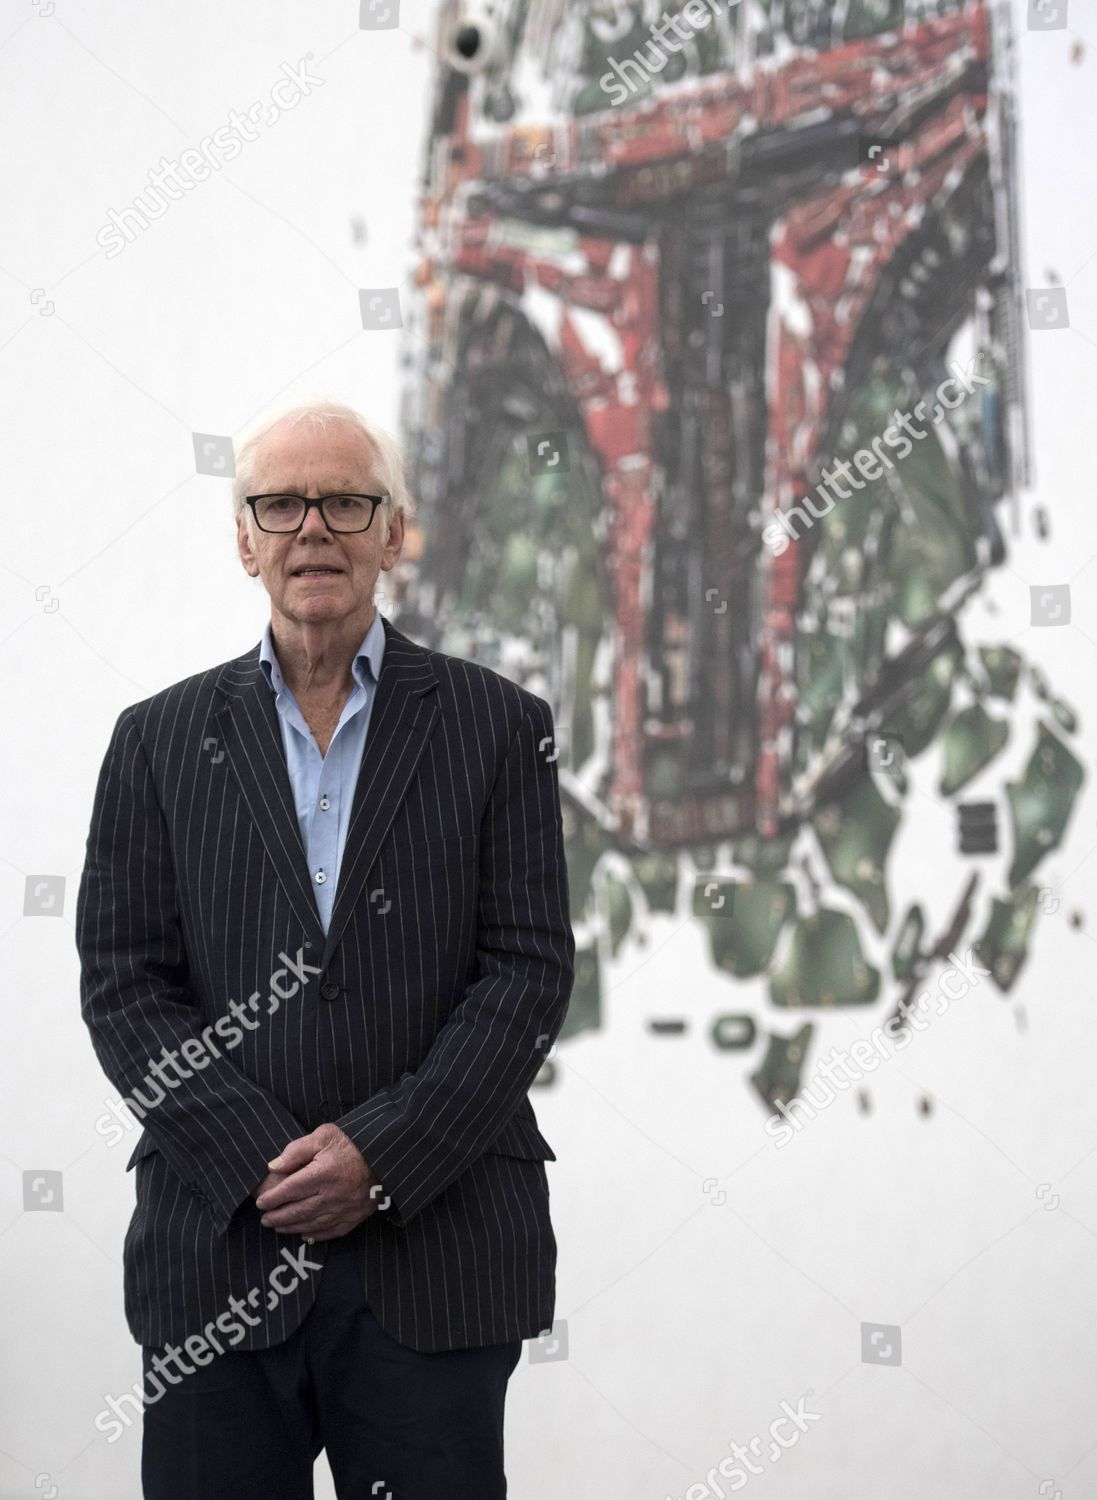 Stock photo of Star Wars actor Jeremy Bulloch attends photocall at Star Wars Identities, London, United Kingdom - 26 Jul 2017